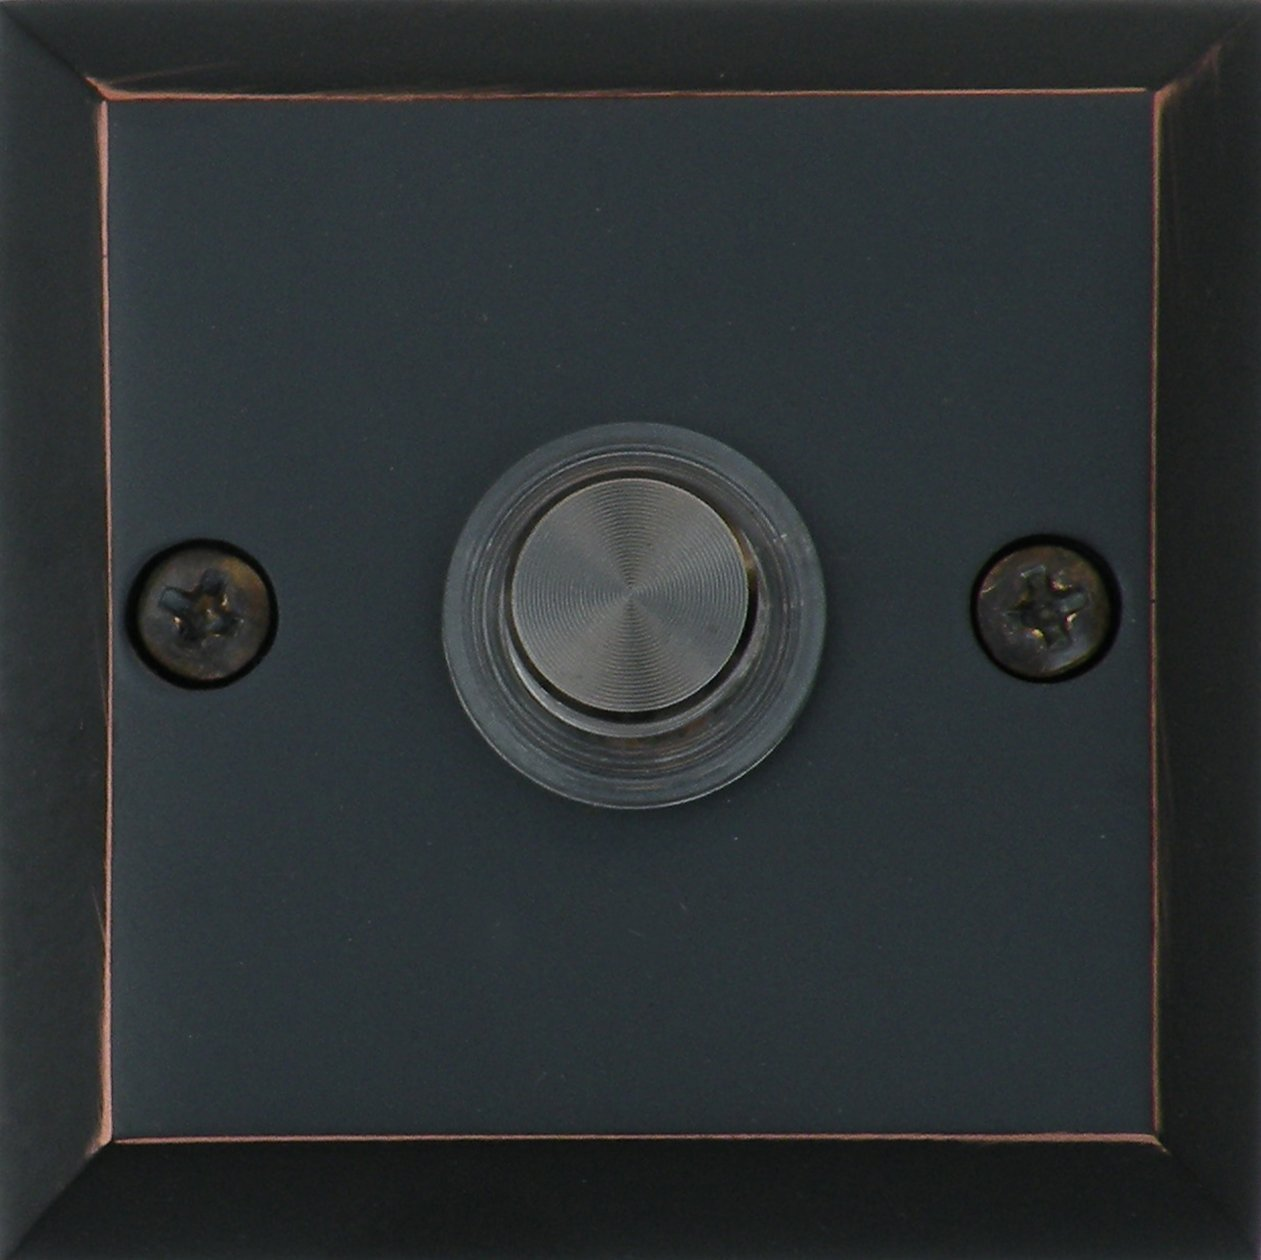 Knoxx Hardware BP3LBXORB Oil Rubbed Bronze 2.5'' Lighted Metro Square Door Bell Button, 1-Pack